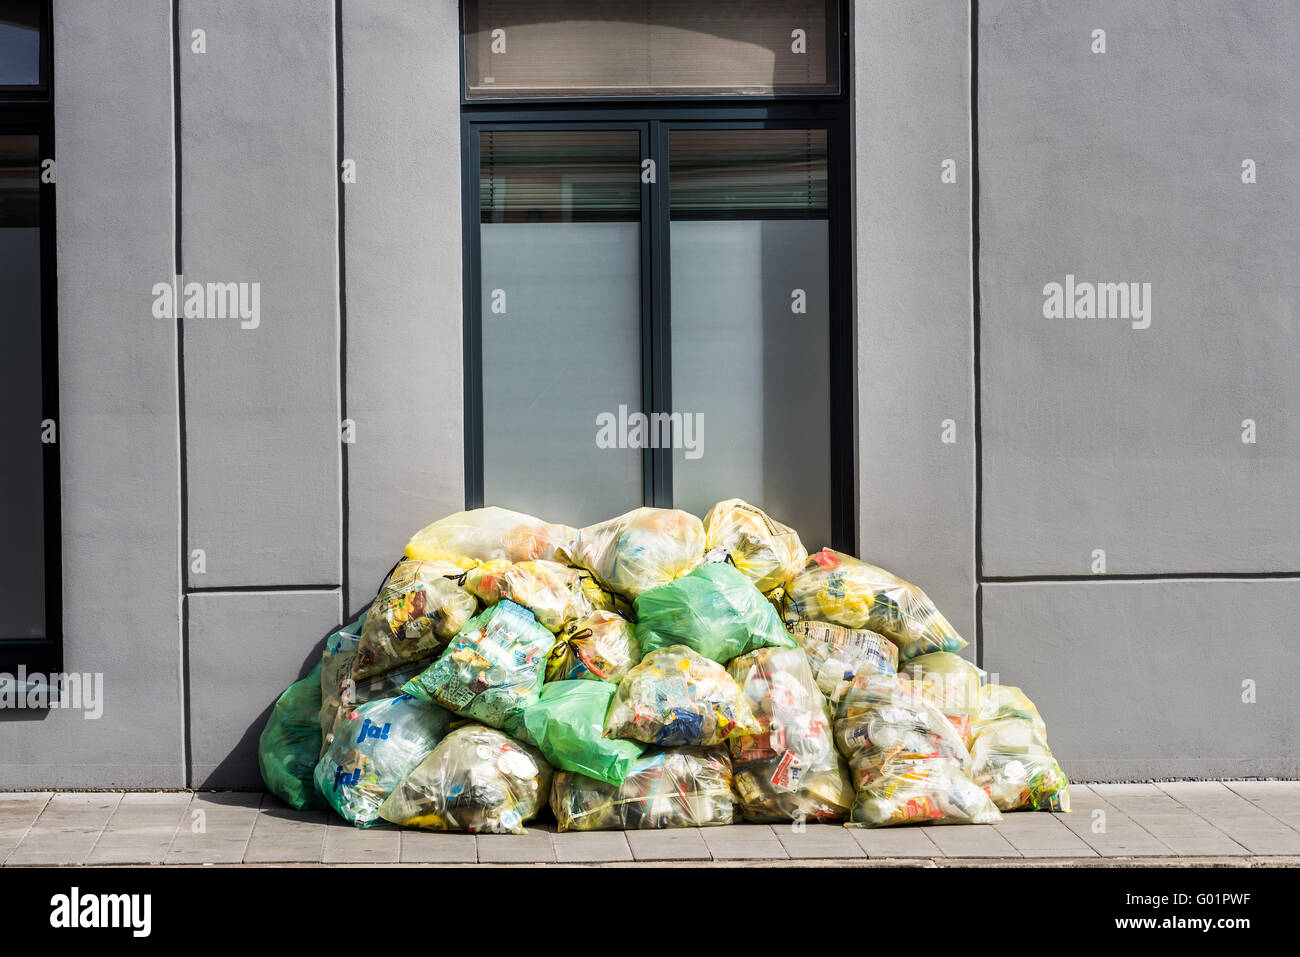 collect garbage, separate, recycle, recycling, garbage bags stack picking up outside the house, building, garbage - Stock Image